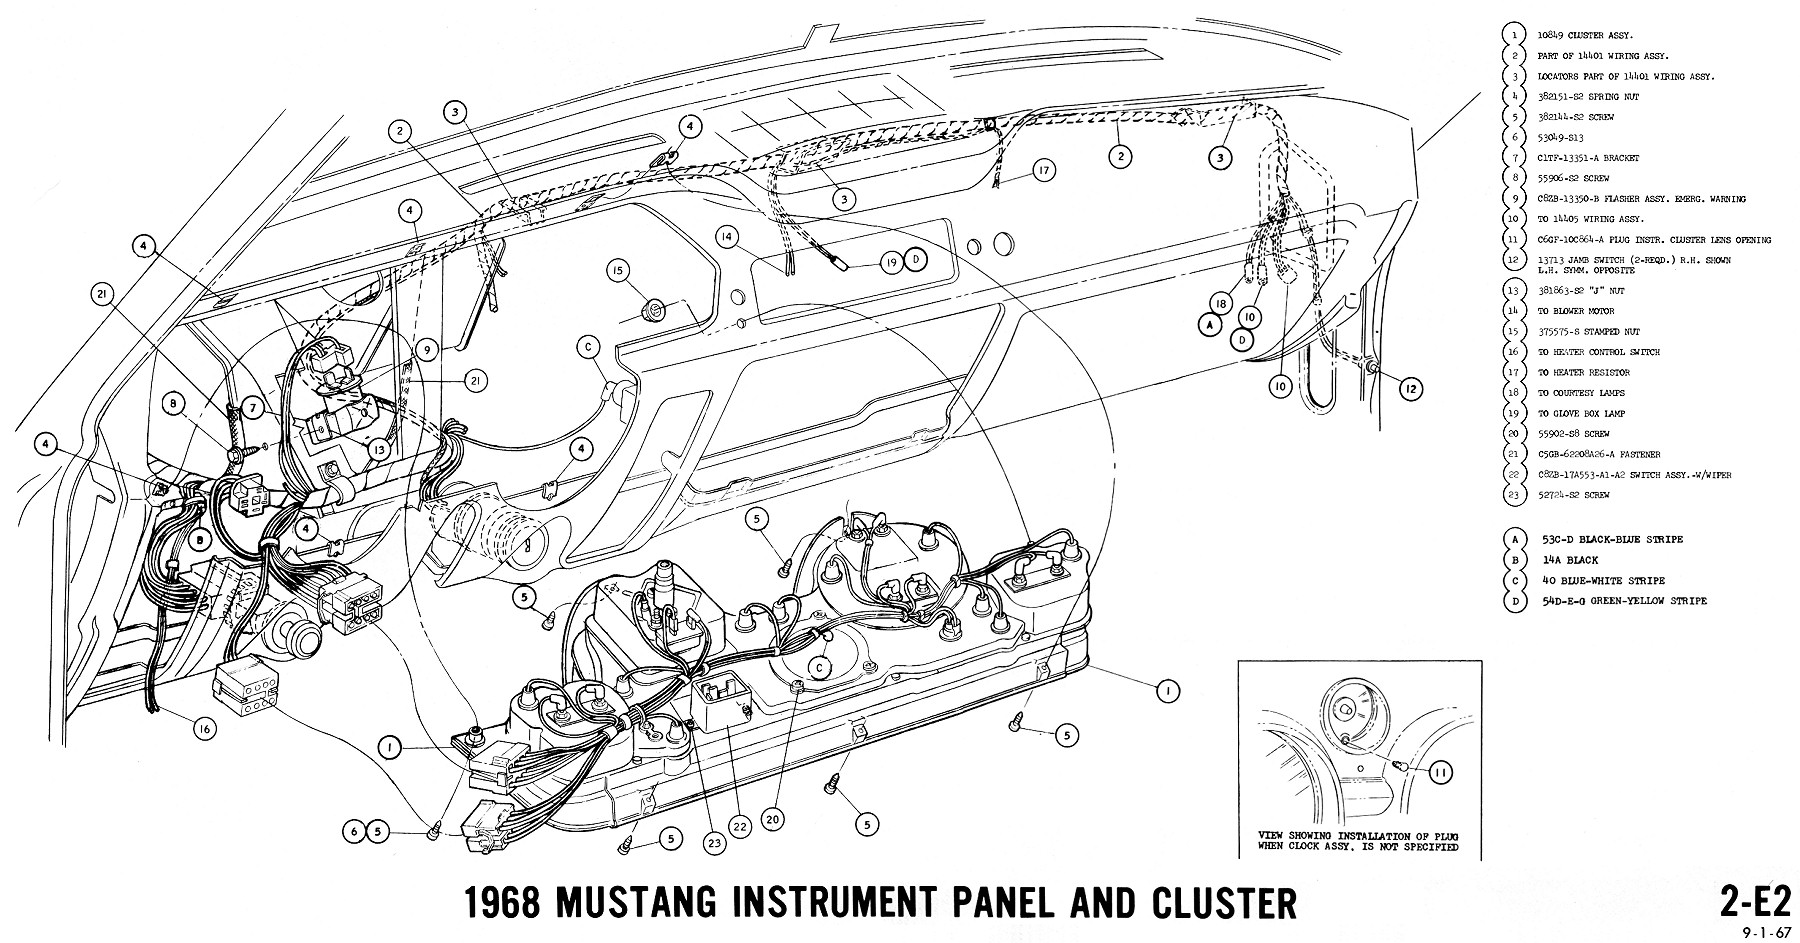 1968 mustang wiring diagrams and vacuum schematics average joe 1968 mustang wiring diagram instruments 2